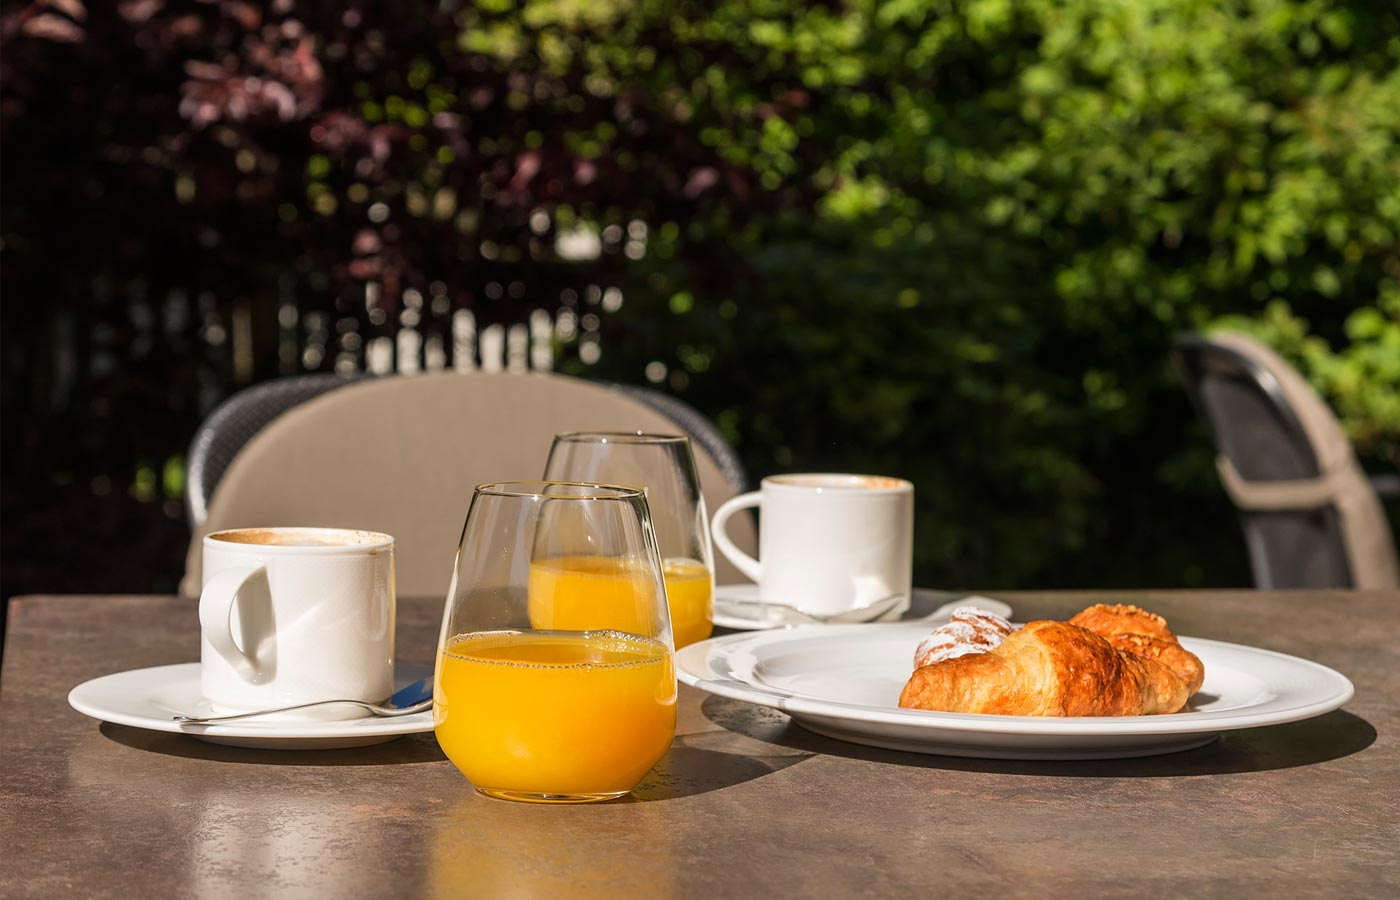 Cappuccino, orange juice and a brioche on a table outdoors